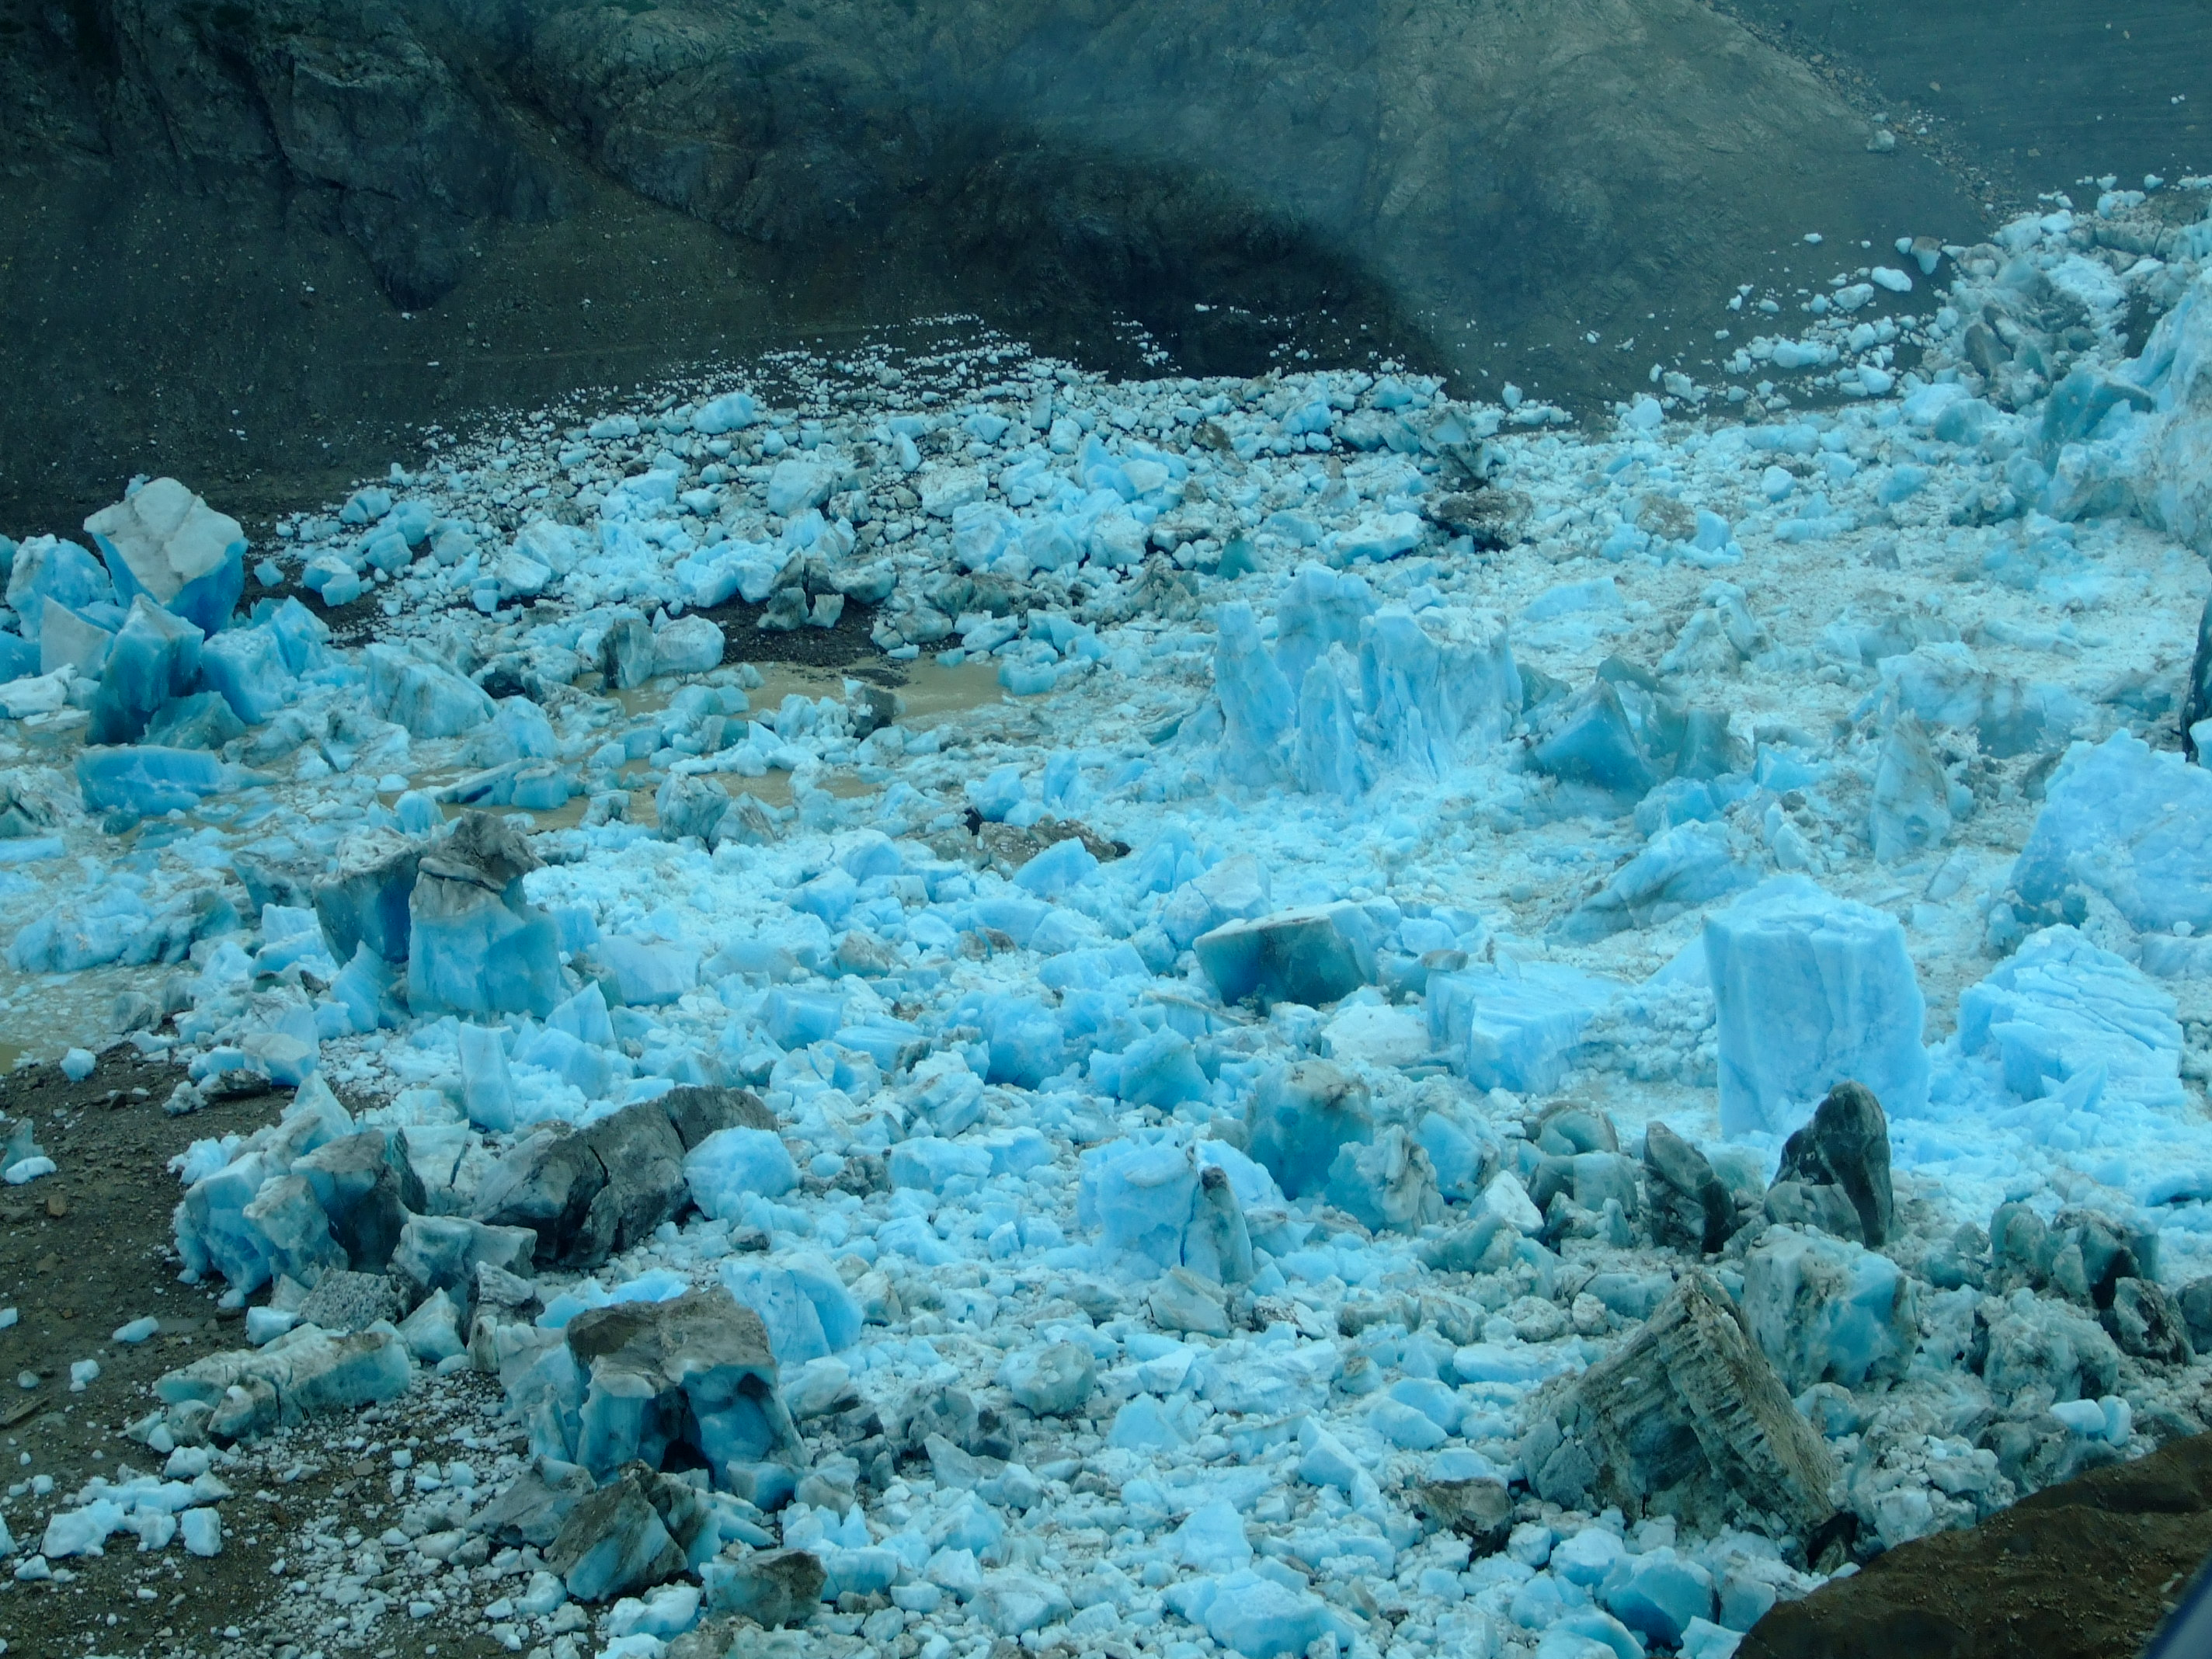 The jökulhlaups wrecking ground of the Triumvirate Glacier at the southern end of Strandline Lake